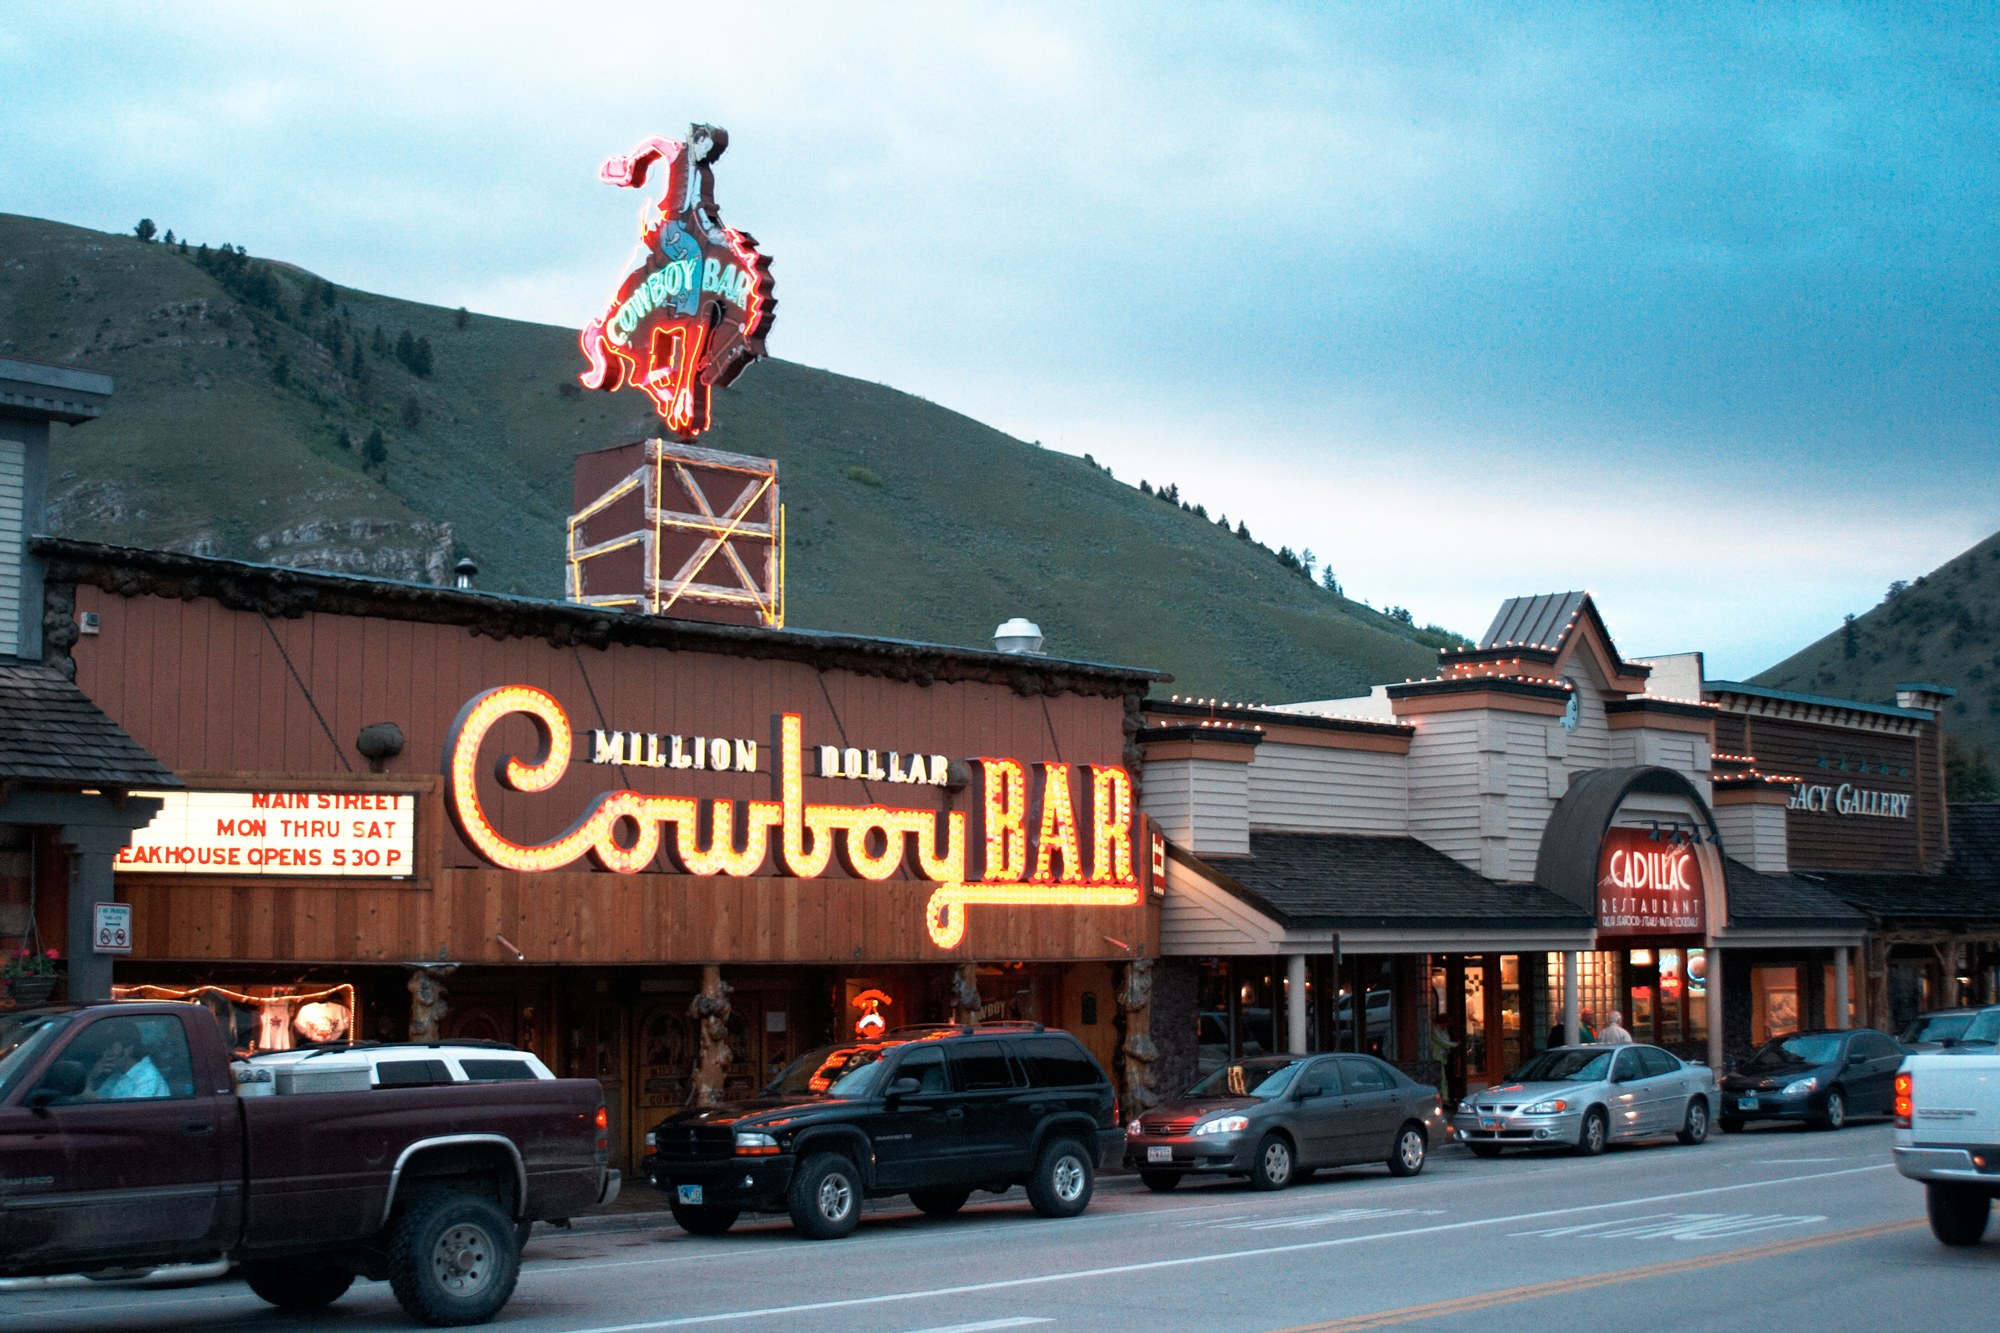 00-holding-best-restaurants-in-jackson-hole-wyoming